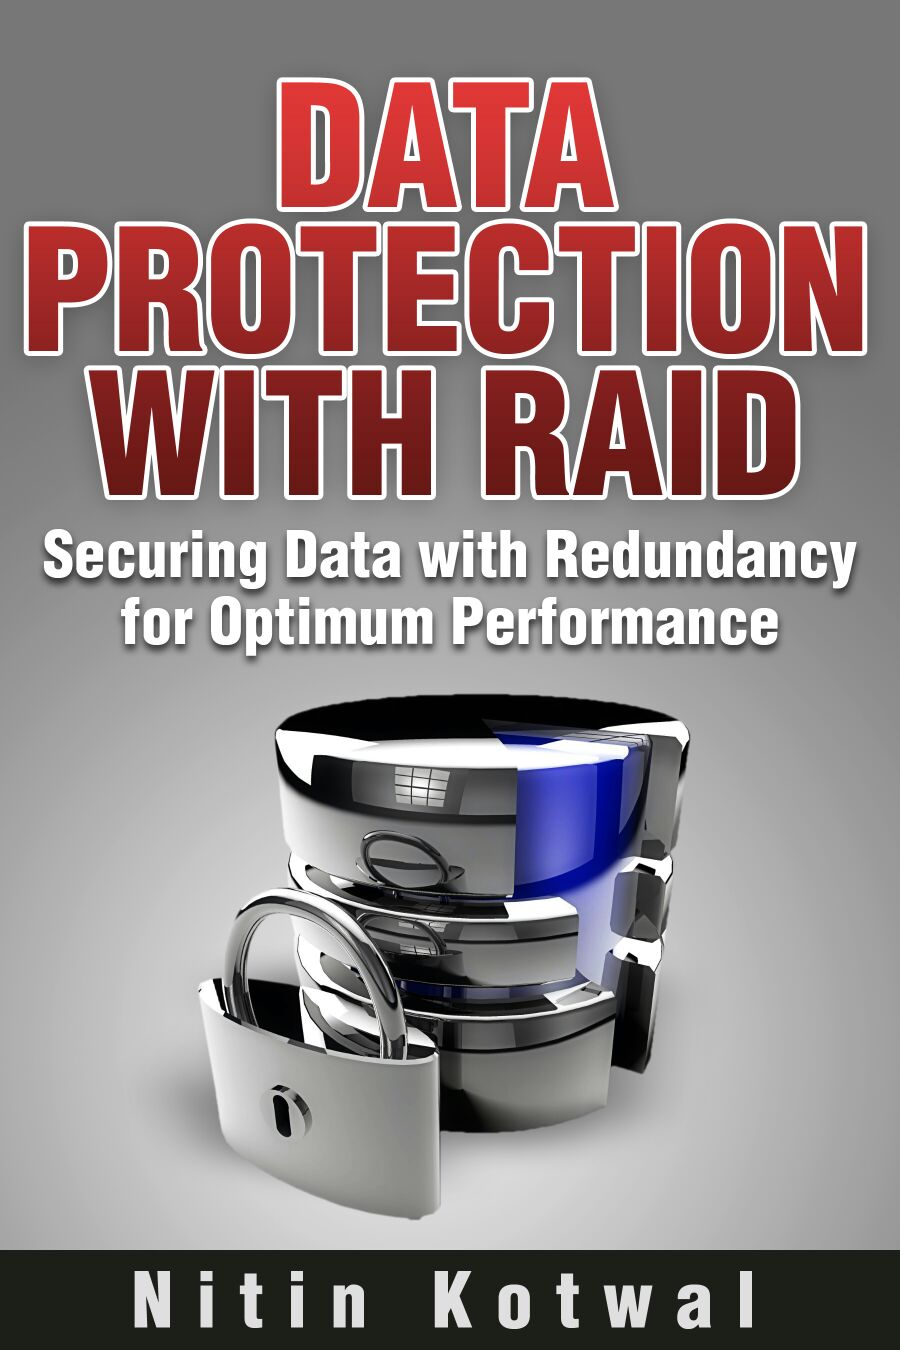 Data Protection with RAID E-book